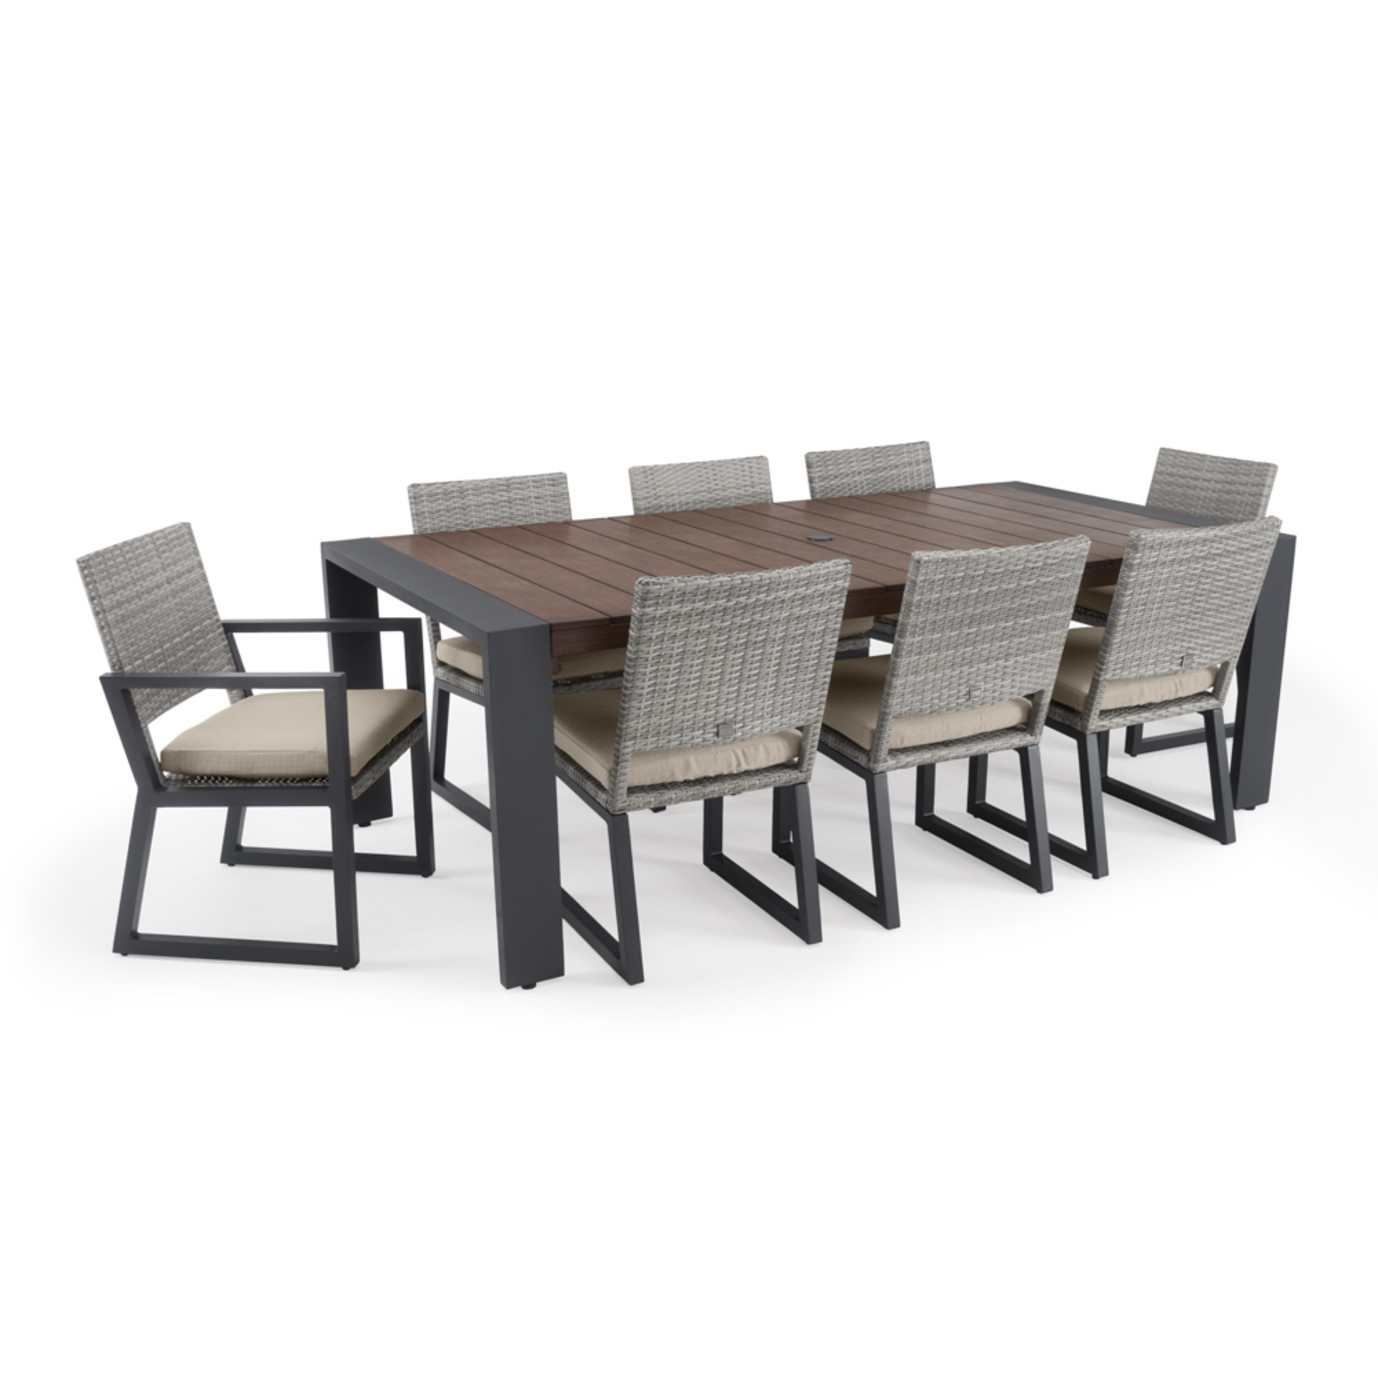 Milo™ Gray 9pc Dining Set - Slate Gray